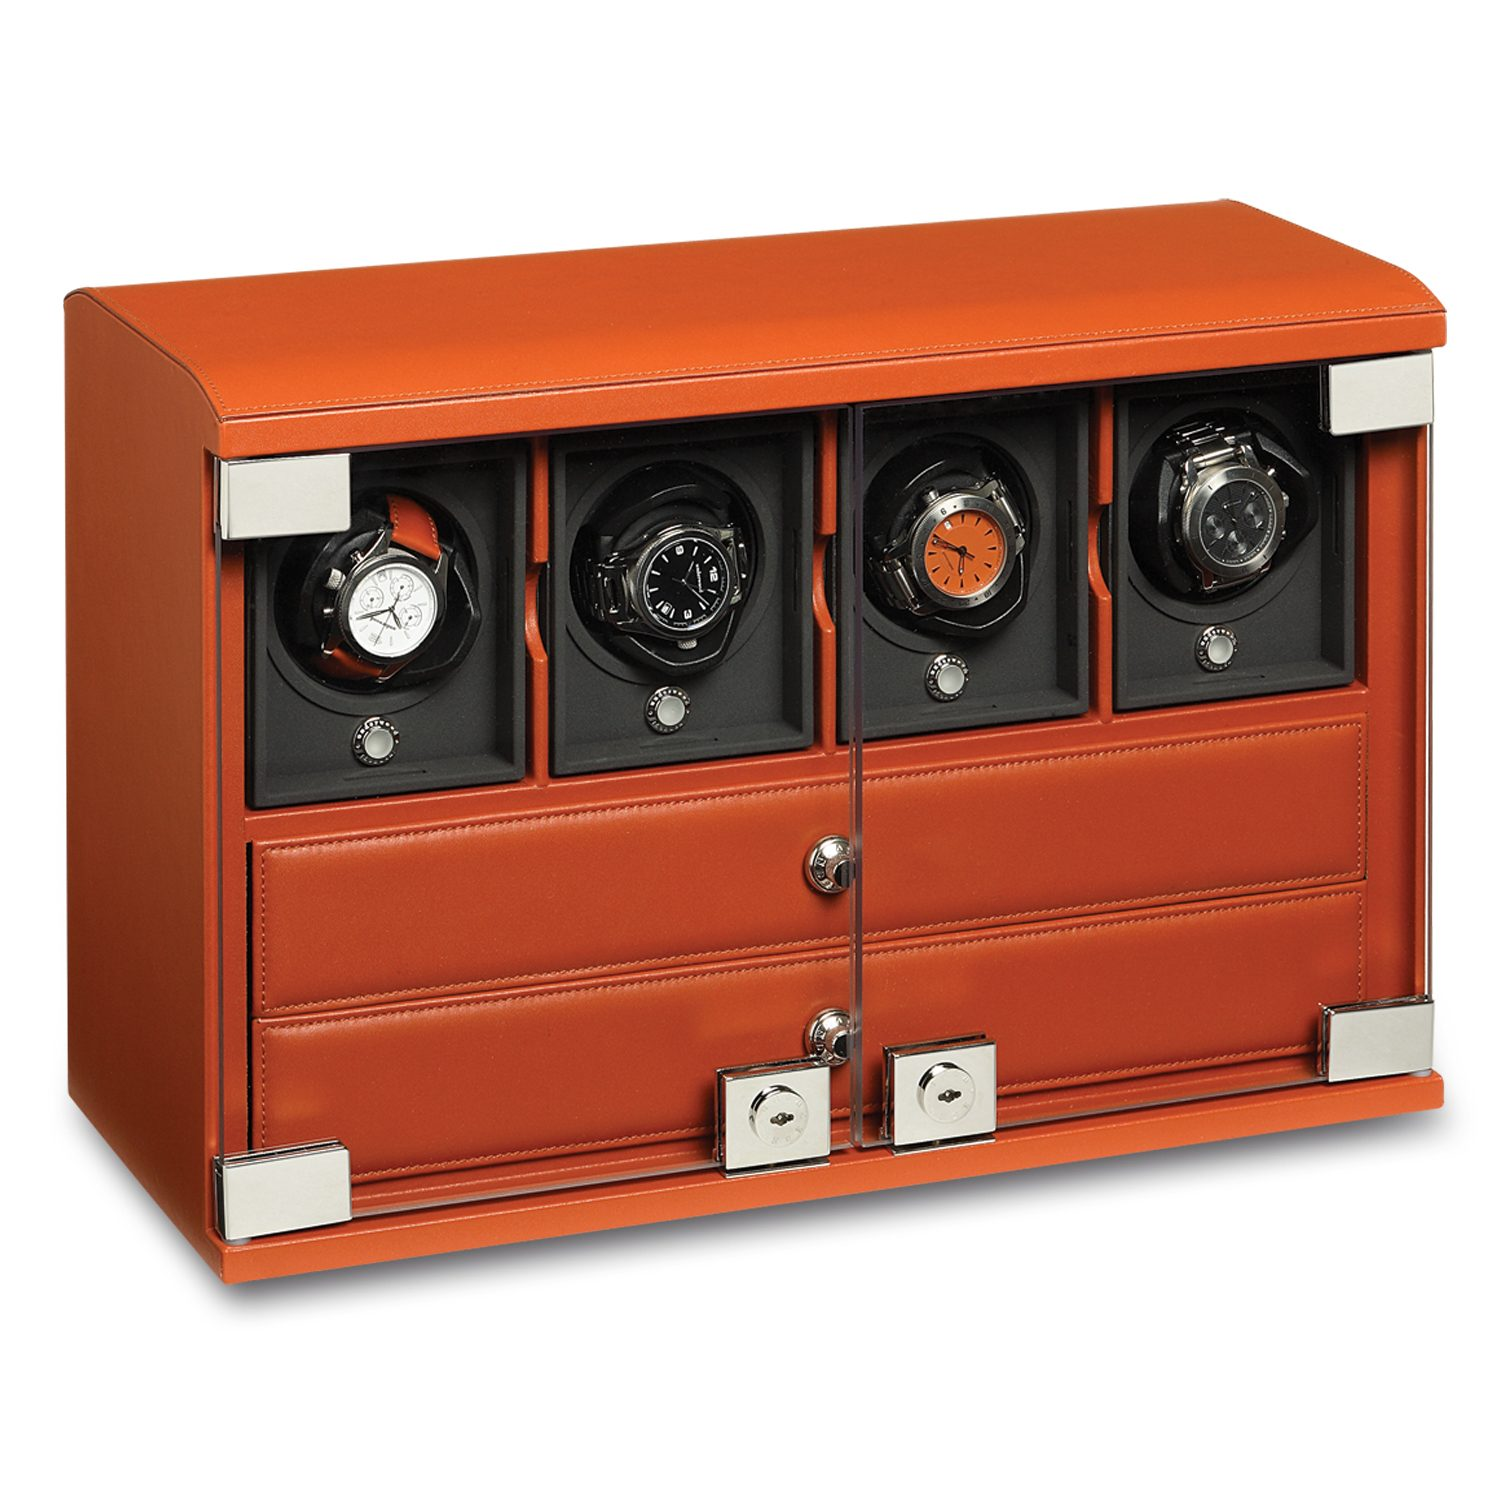 Watch-winder-for-4-watches-with-watch-storage-trays